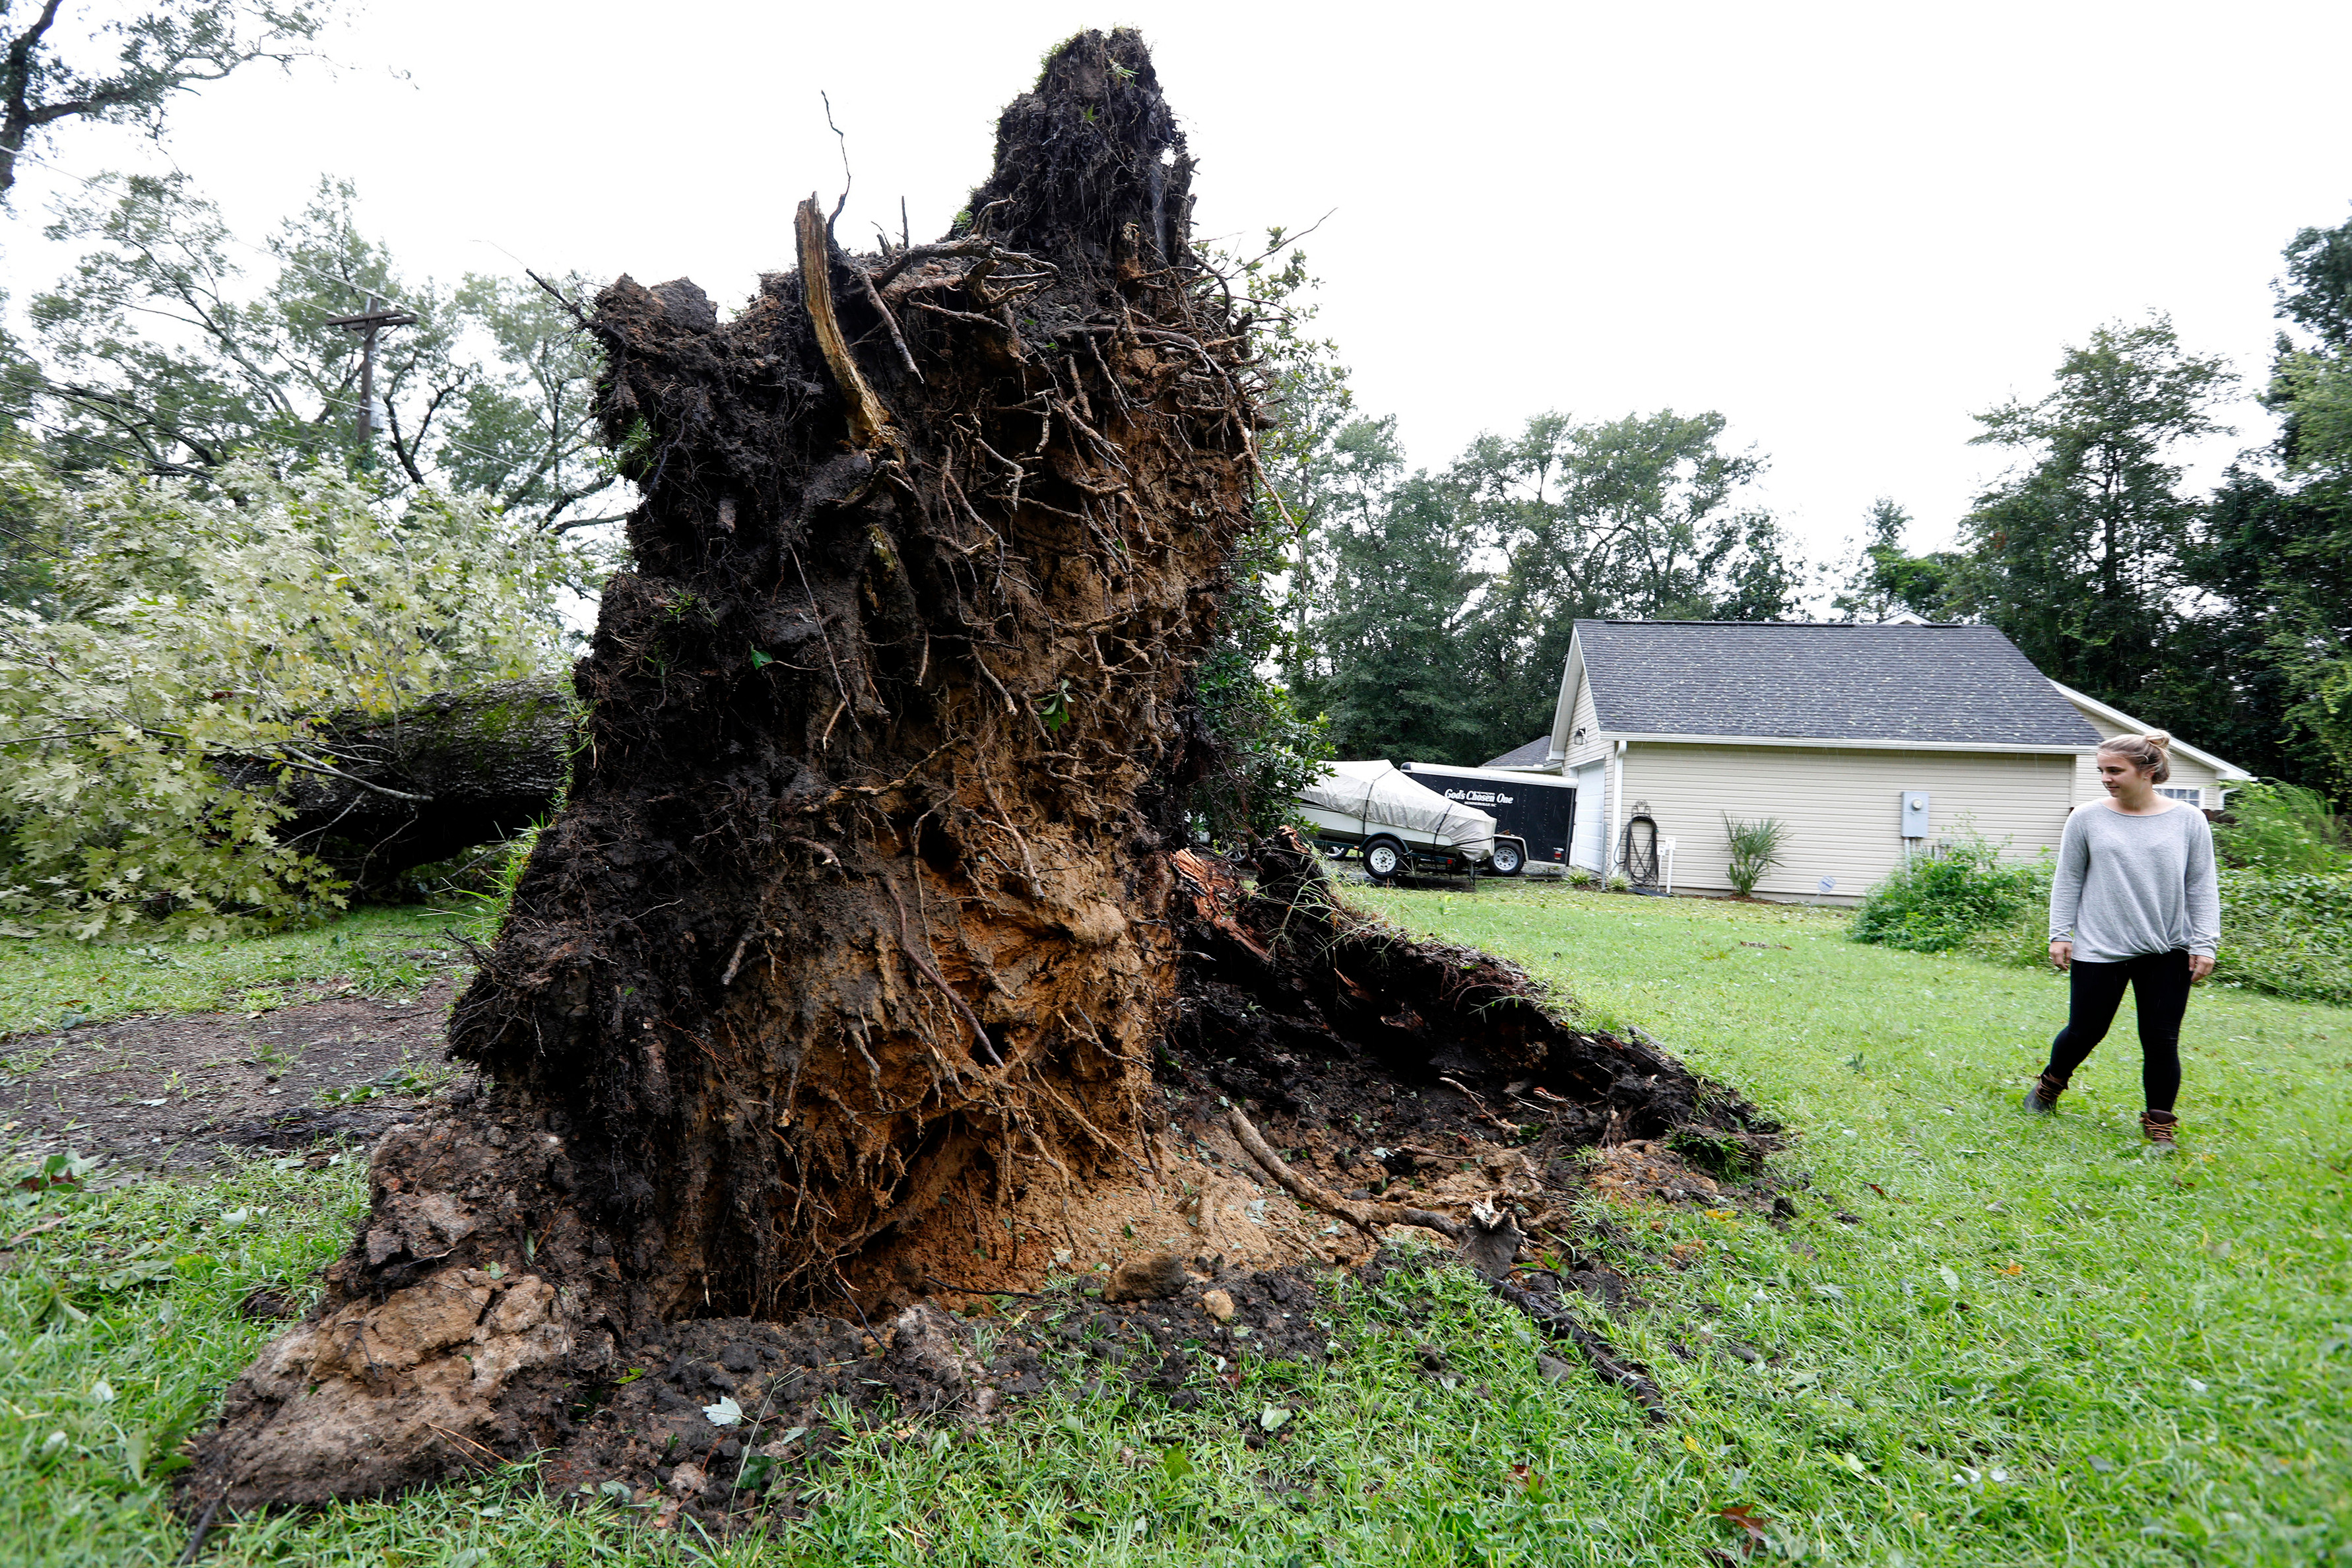 Kelsey Myers looks at an overturned tree in her front yard in Summerville, South Carolina